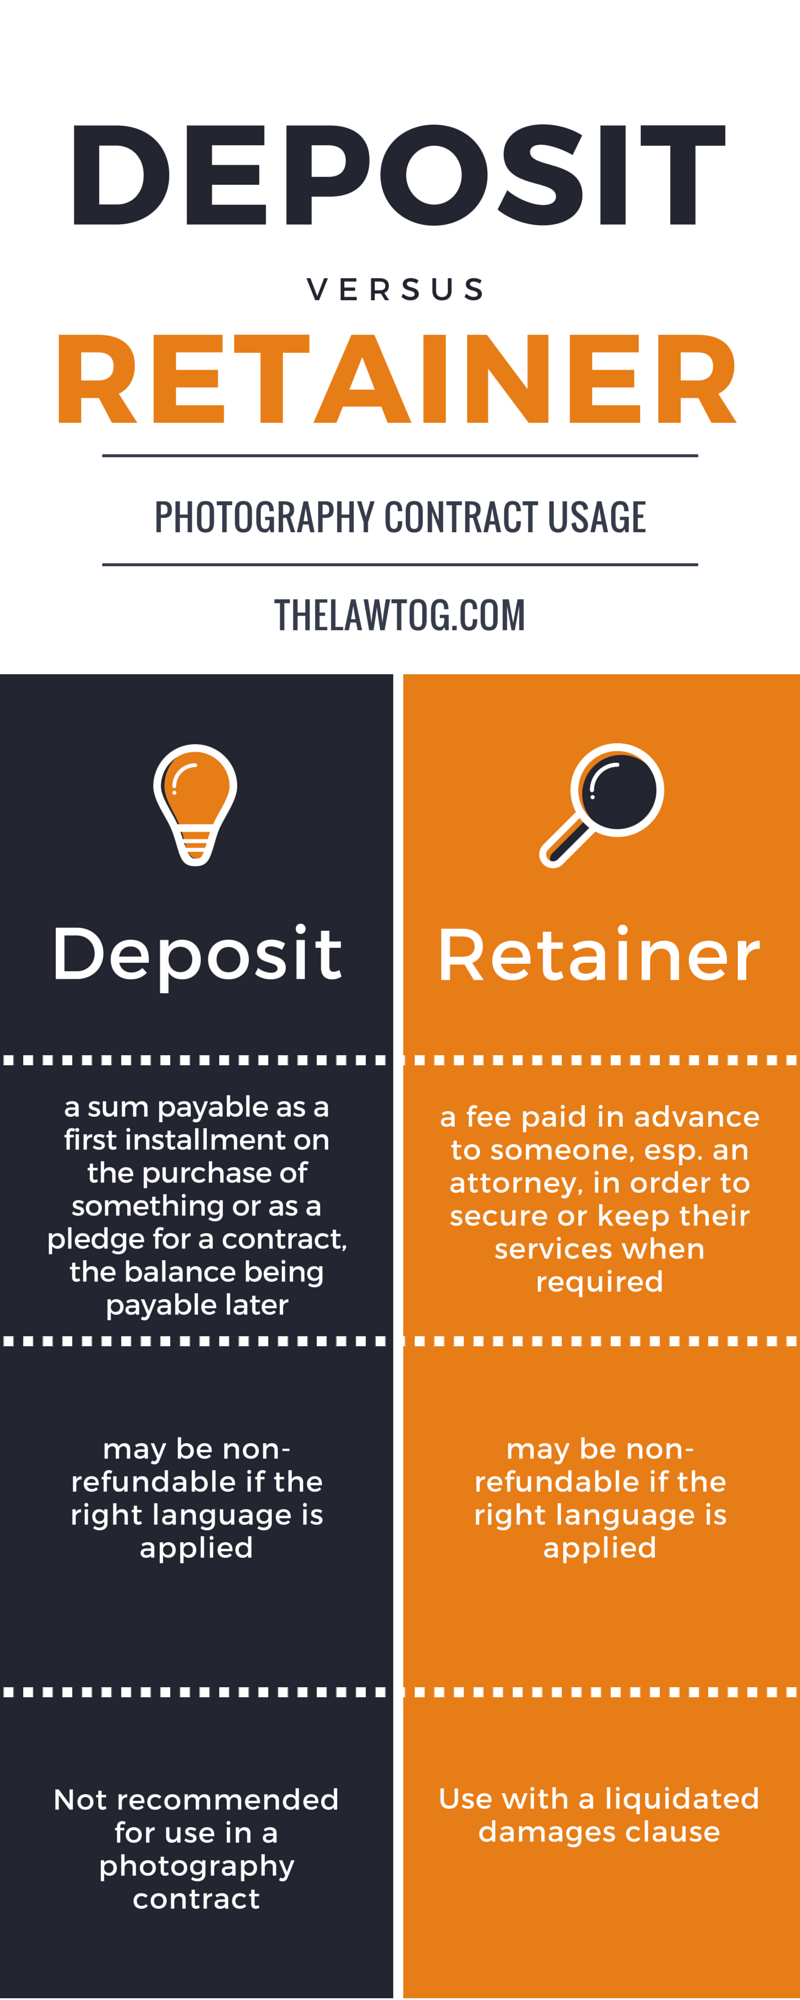 To Use Deposit Or Retainer In Your Photography Contract